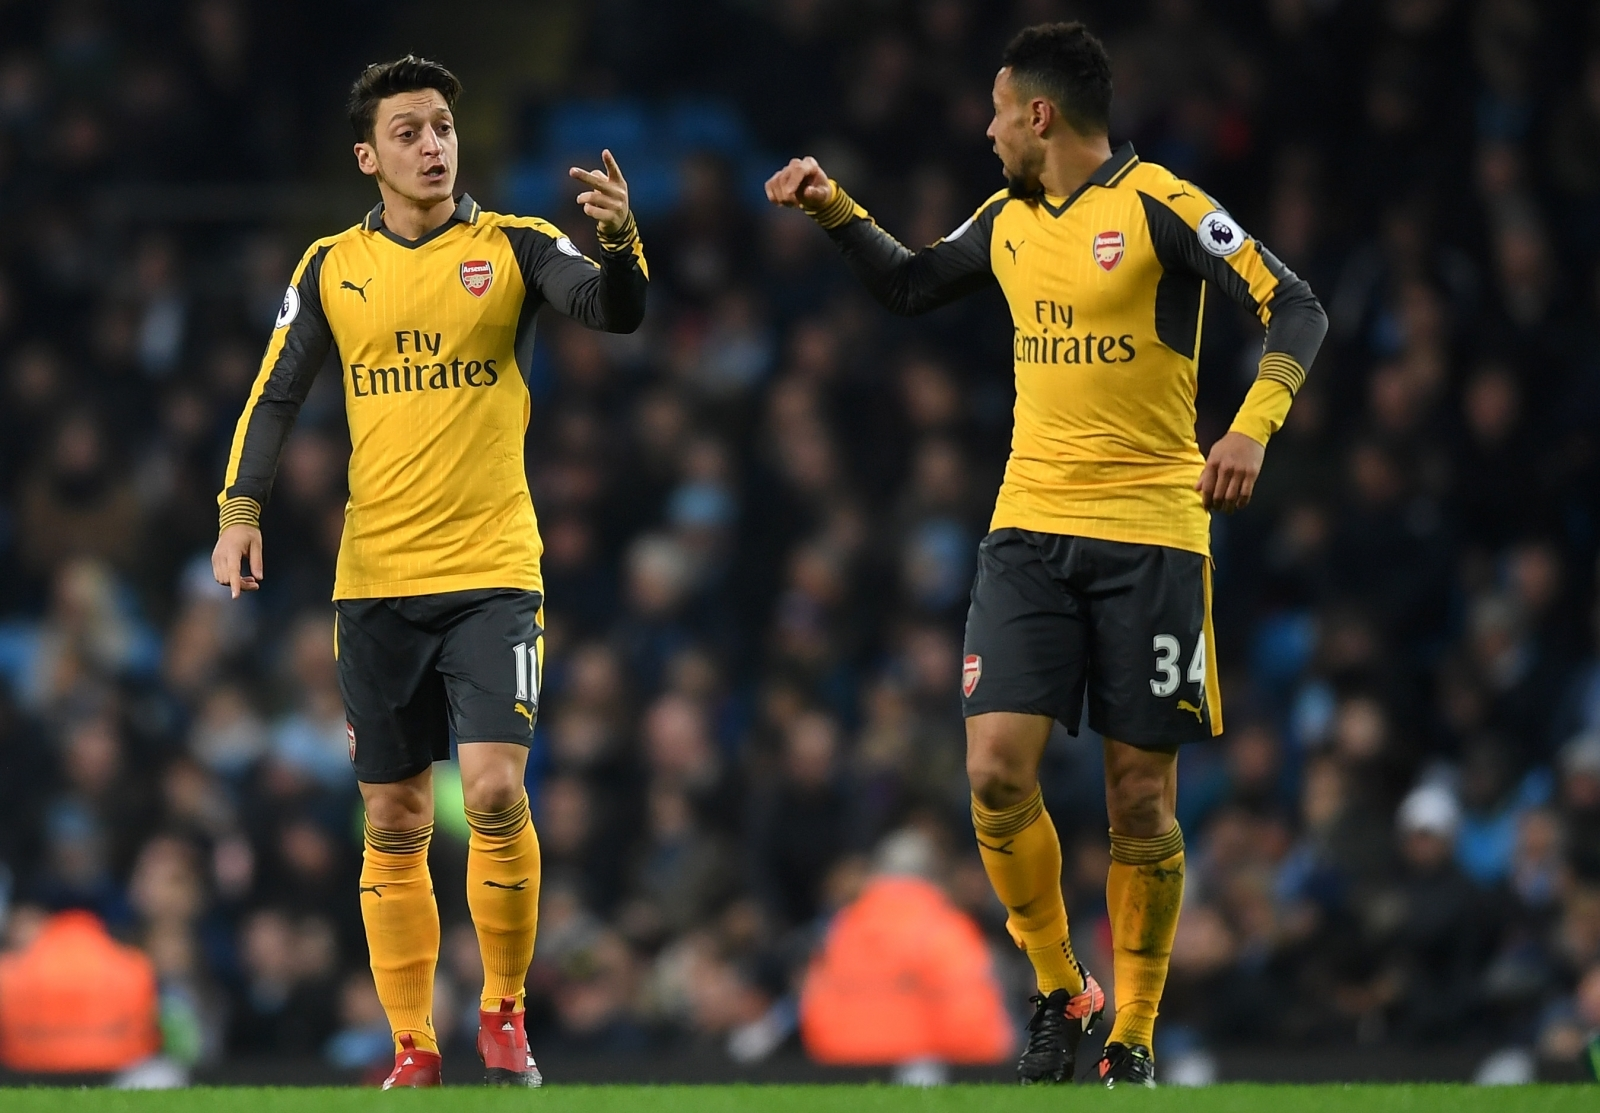 Mesut Ozil and Francis Coquelin